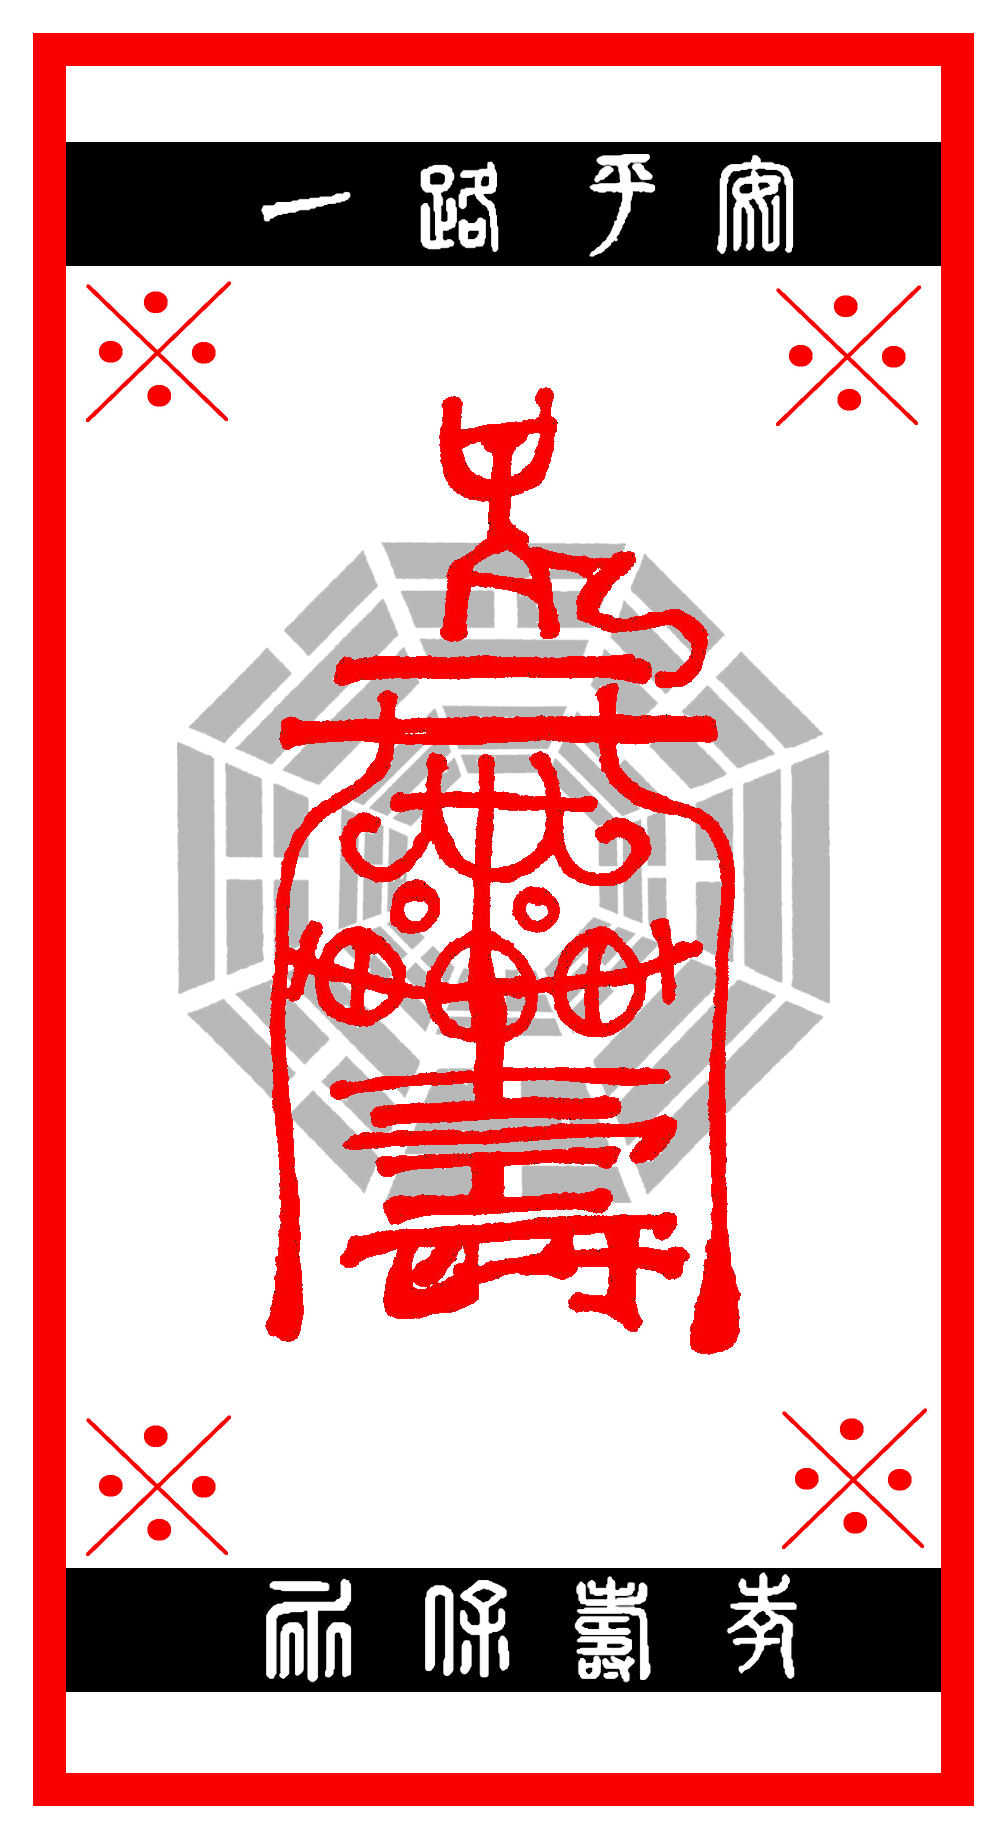 Birth chart compatibility free image solve by quadratic formula tao of craft downloads benebell wen travel protection sigil figure 4 17 tao of craft downloads birth chart compatibility free image geenschuldenfo Gallery